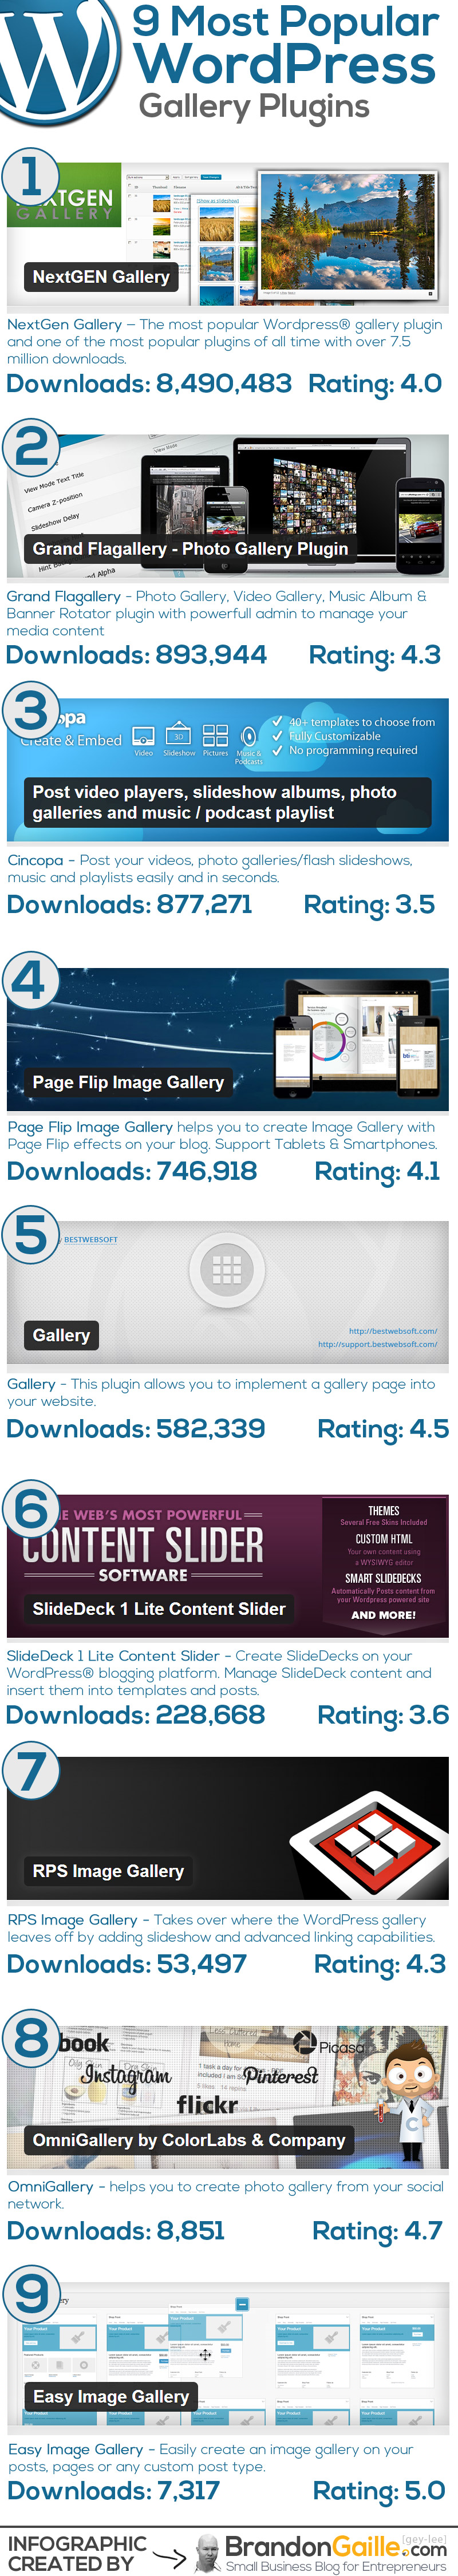 9-most-popular-wordpress-gallery-plugins_525c530fd5843